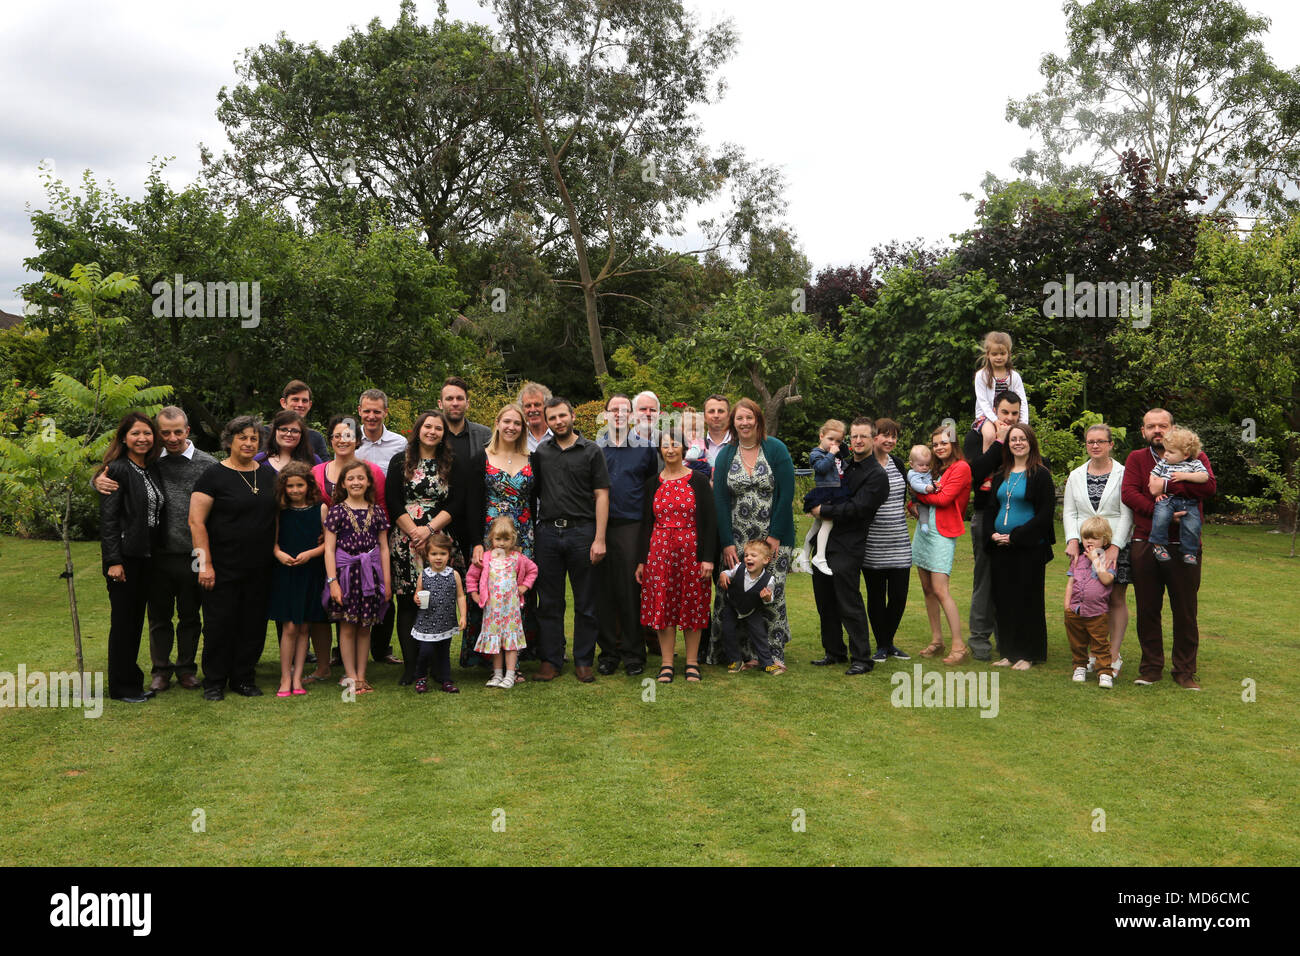 Large Group of People Extended Family in Garden Surrey England - Stock Image